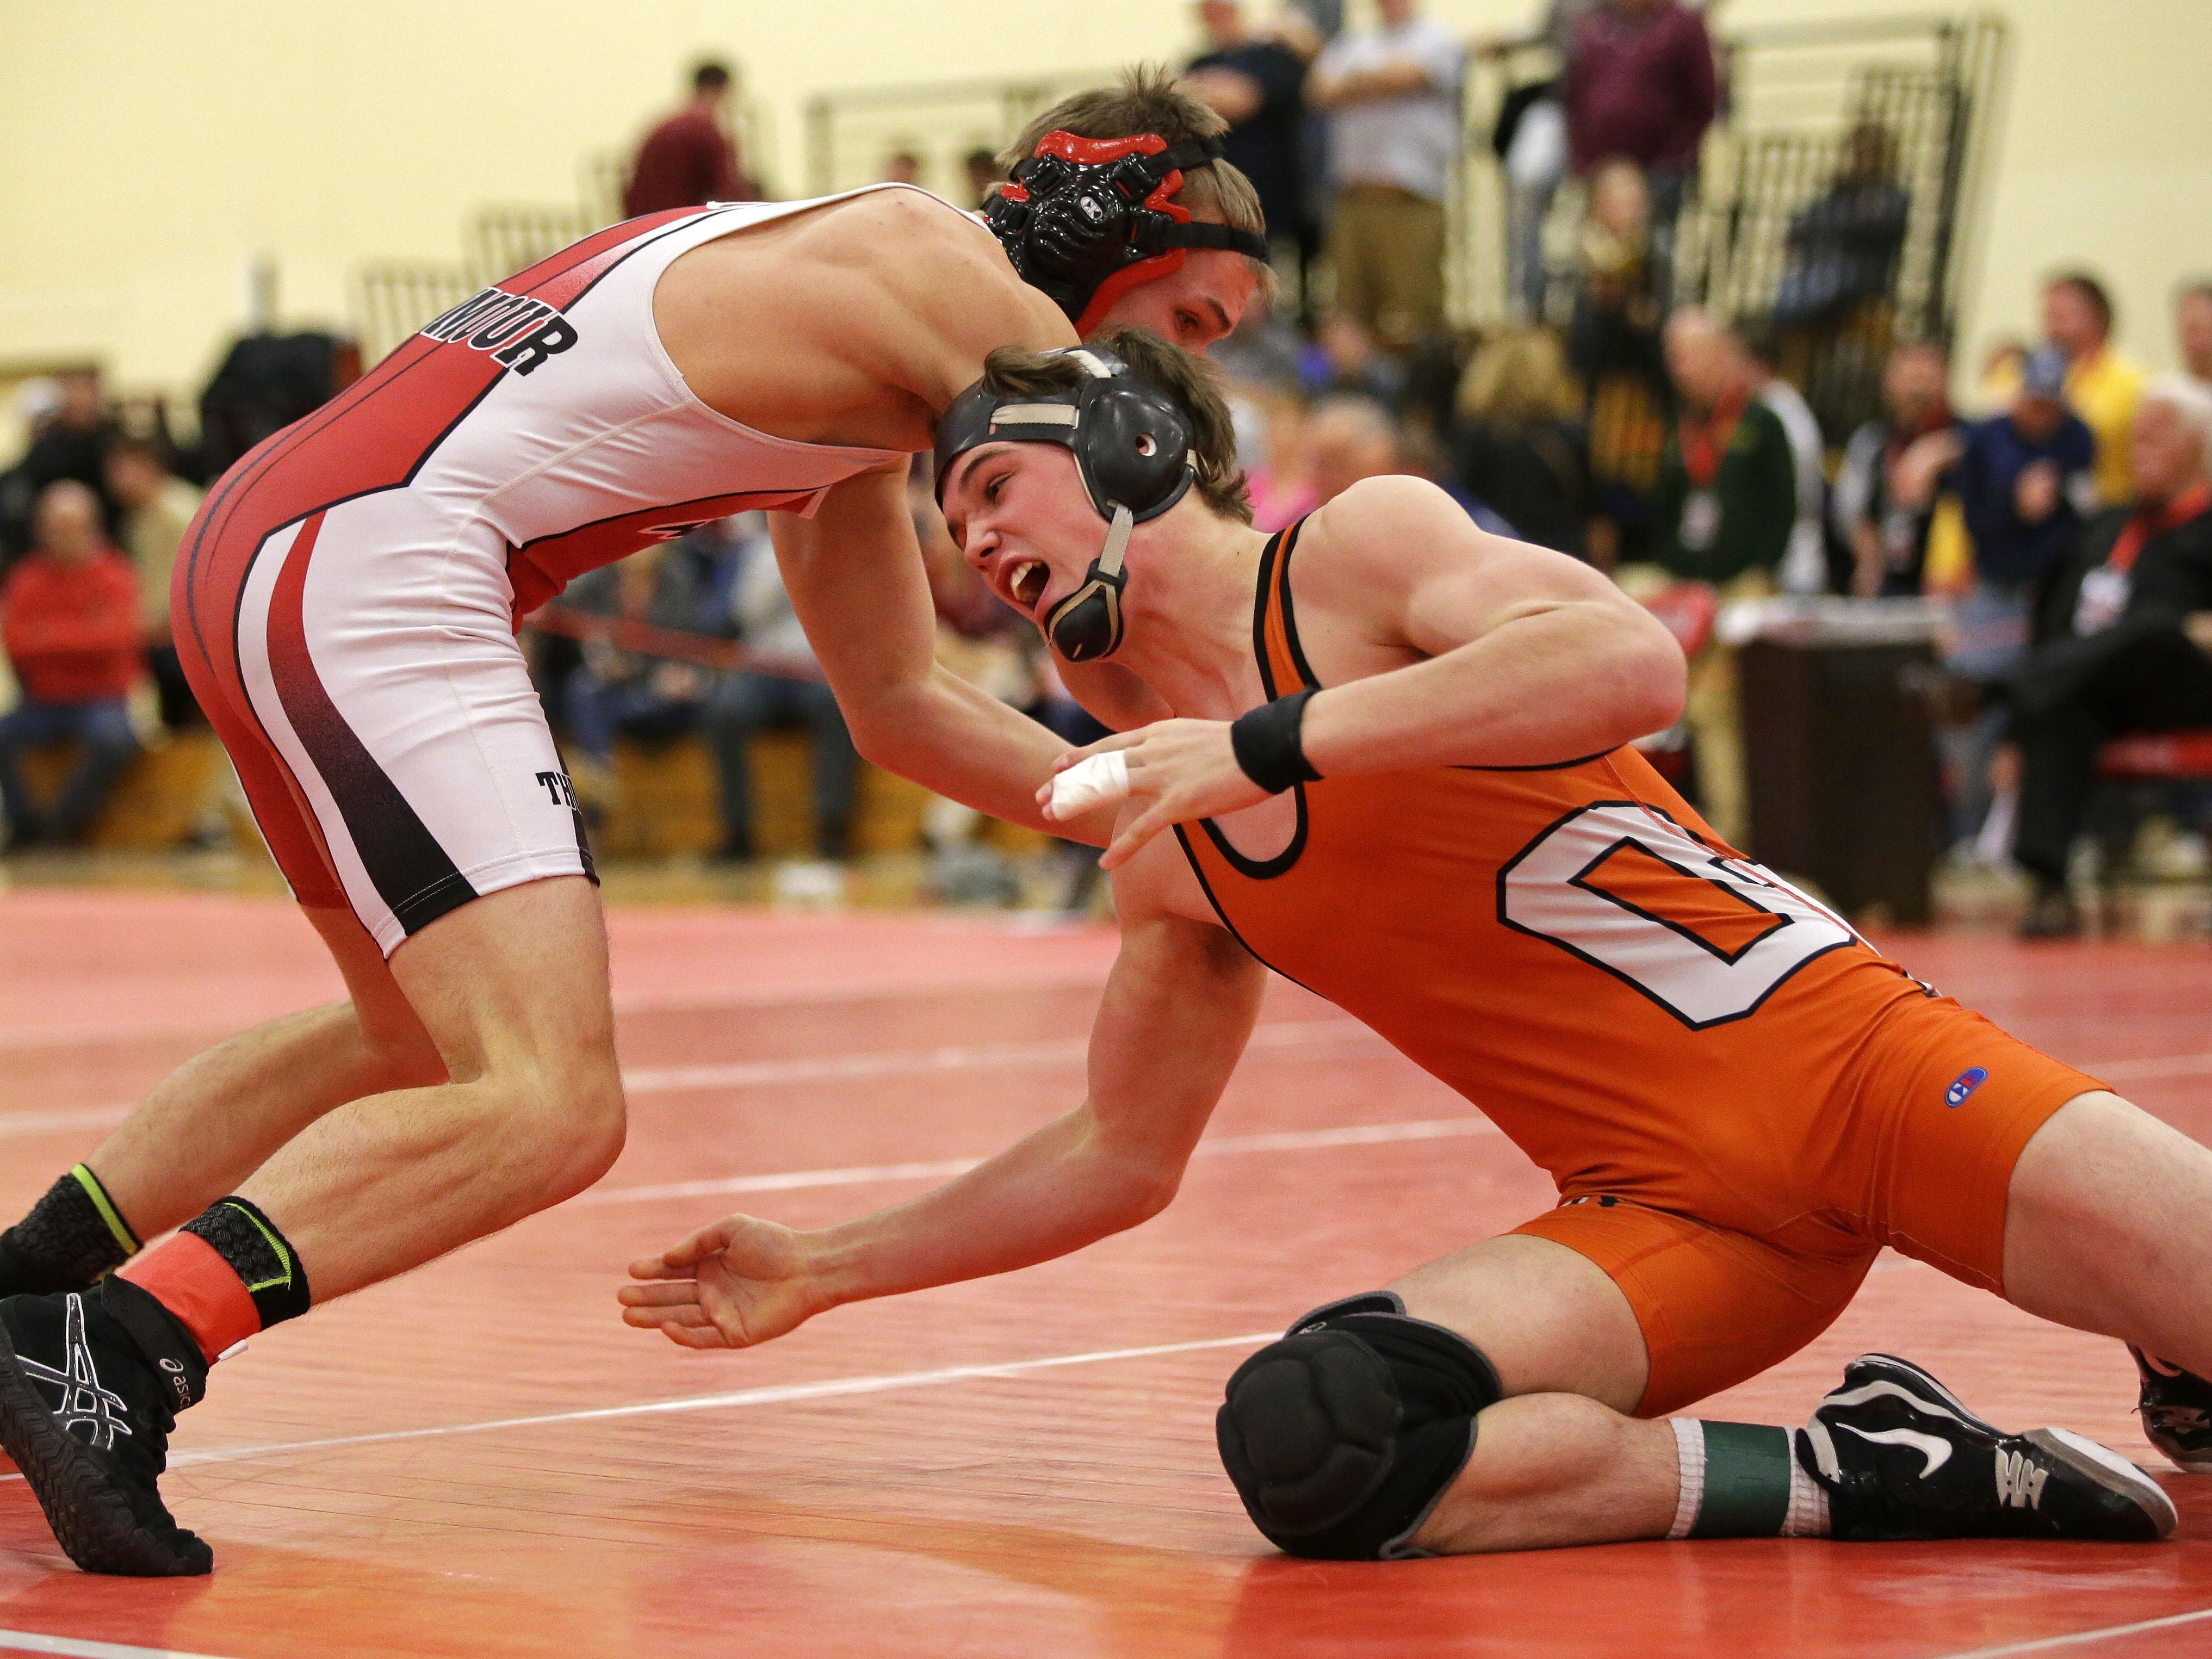 Nate Trepanier of Oconto Falls wrestles Justin Krull of Seymour during the 160-pound championship match during the WIAA Division 2 sectional at Seymour.